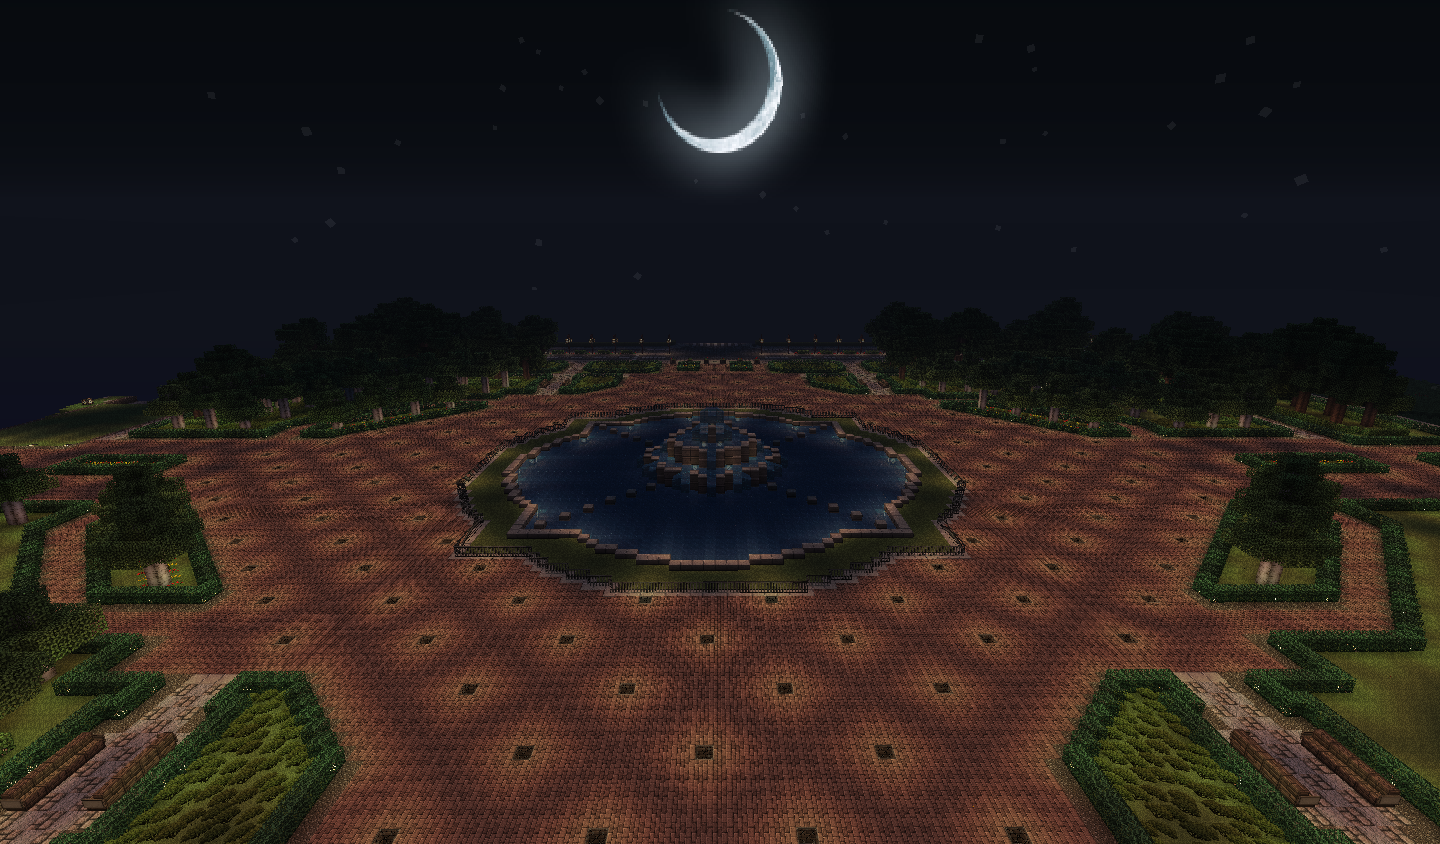 mots games update adventure biomes says looks cool very couple weeks parts into doing personally dont know when that thread minecraft server though content official most impressed everything removed video